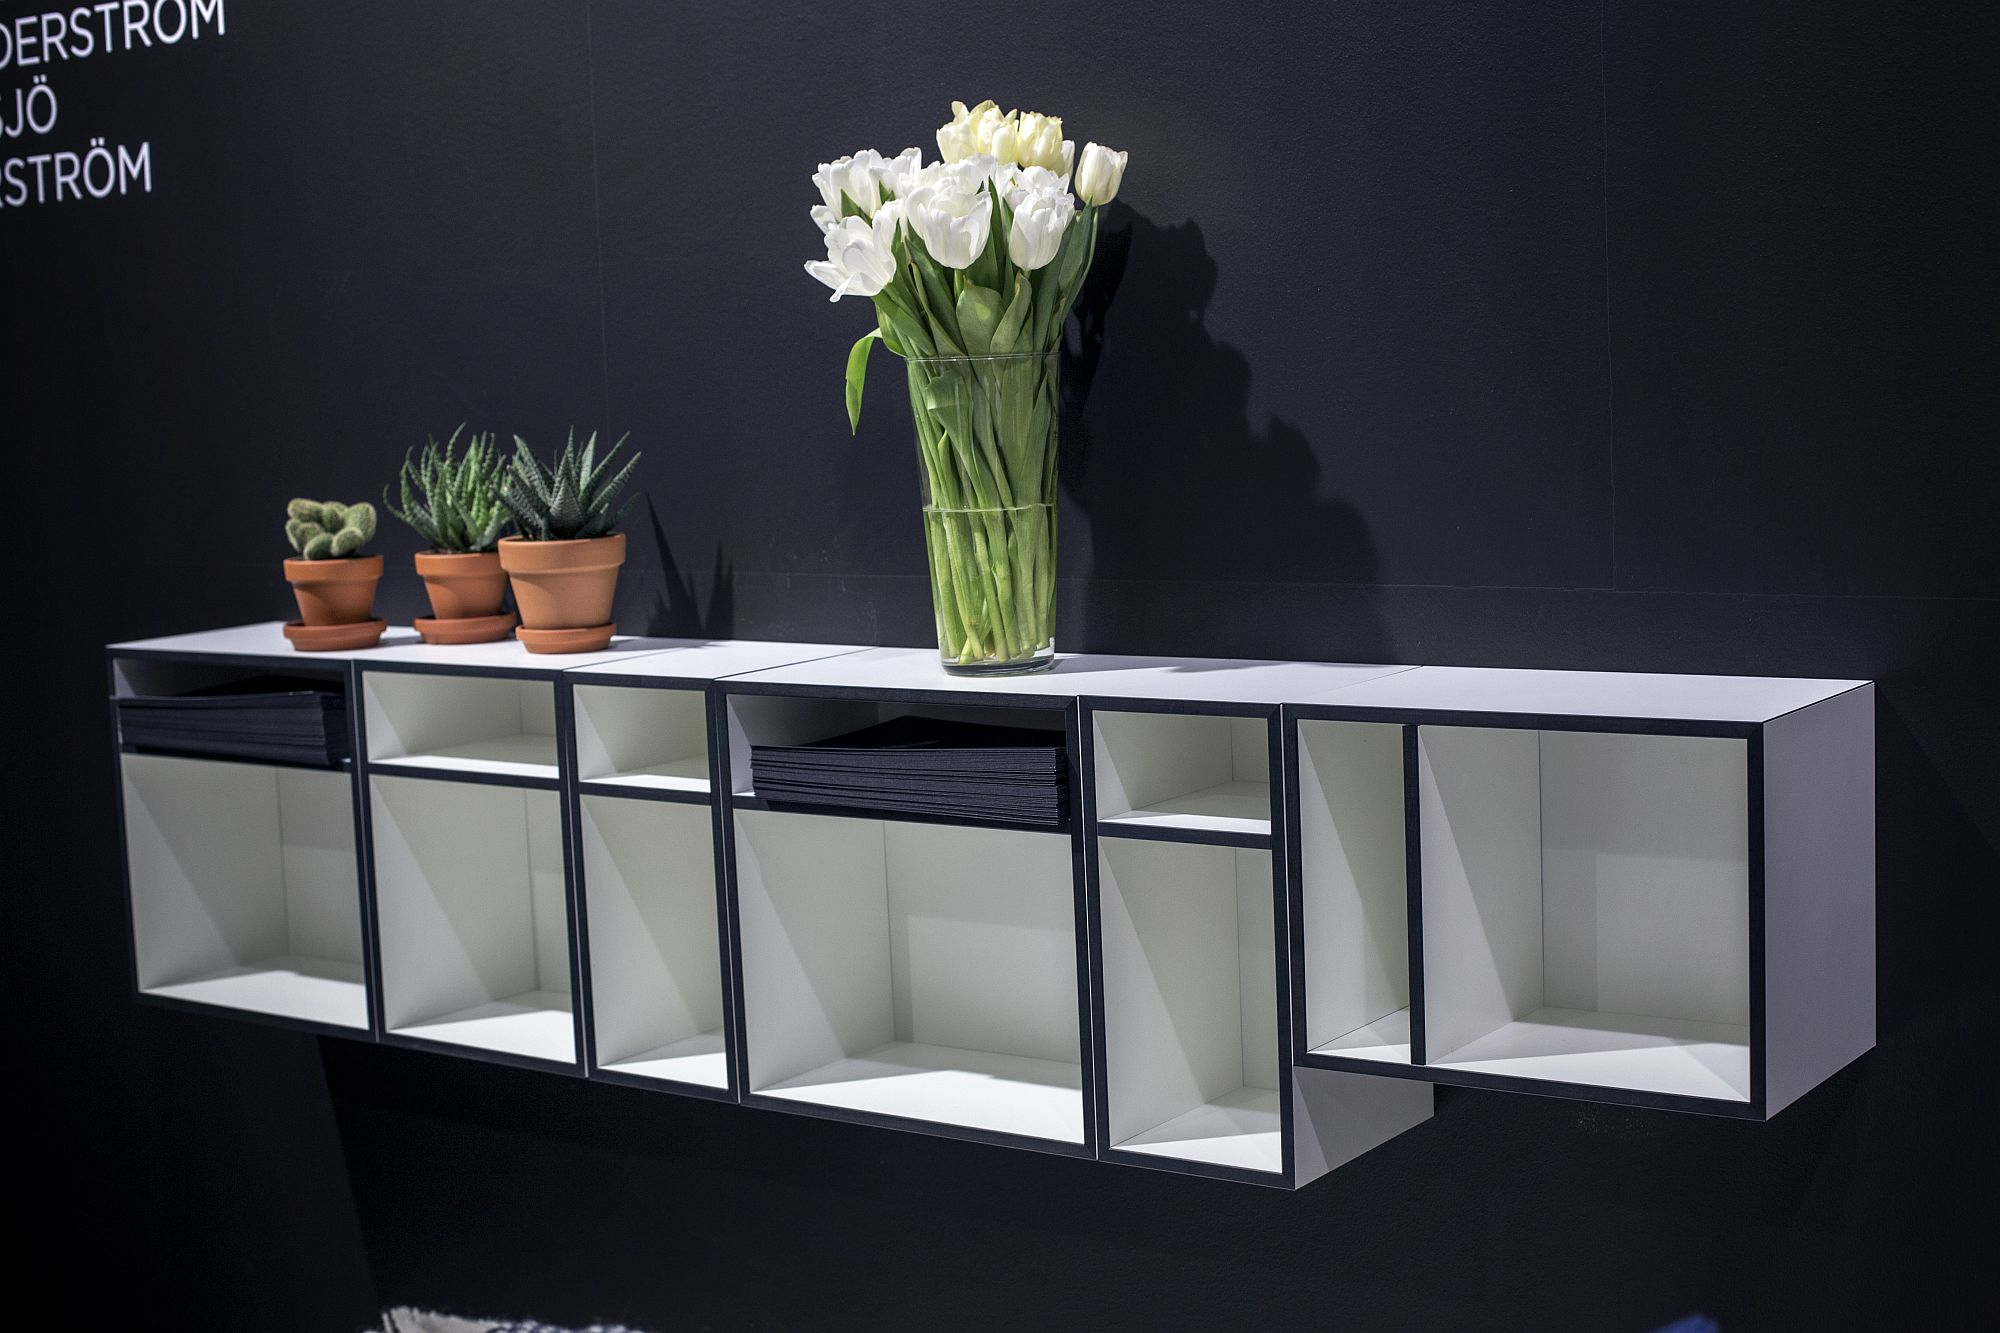 55 Wall Mounted Open Shelves Offering Space Savvy Modularity